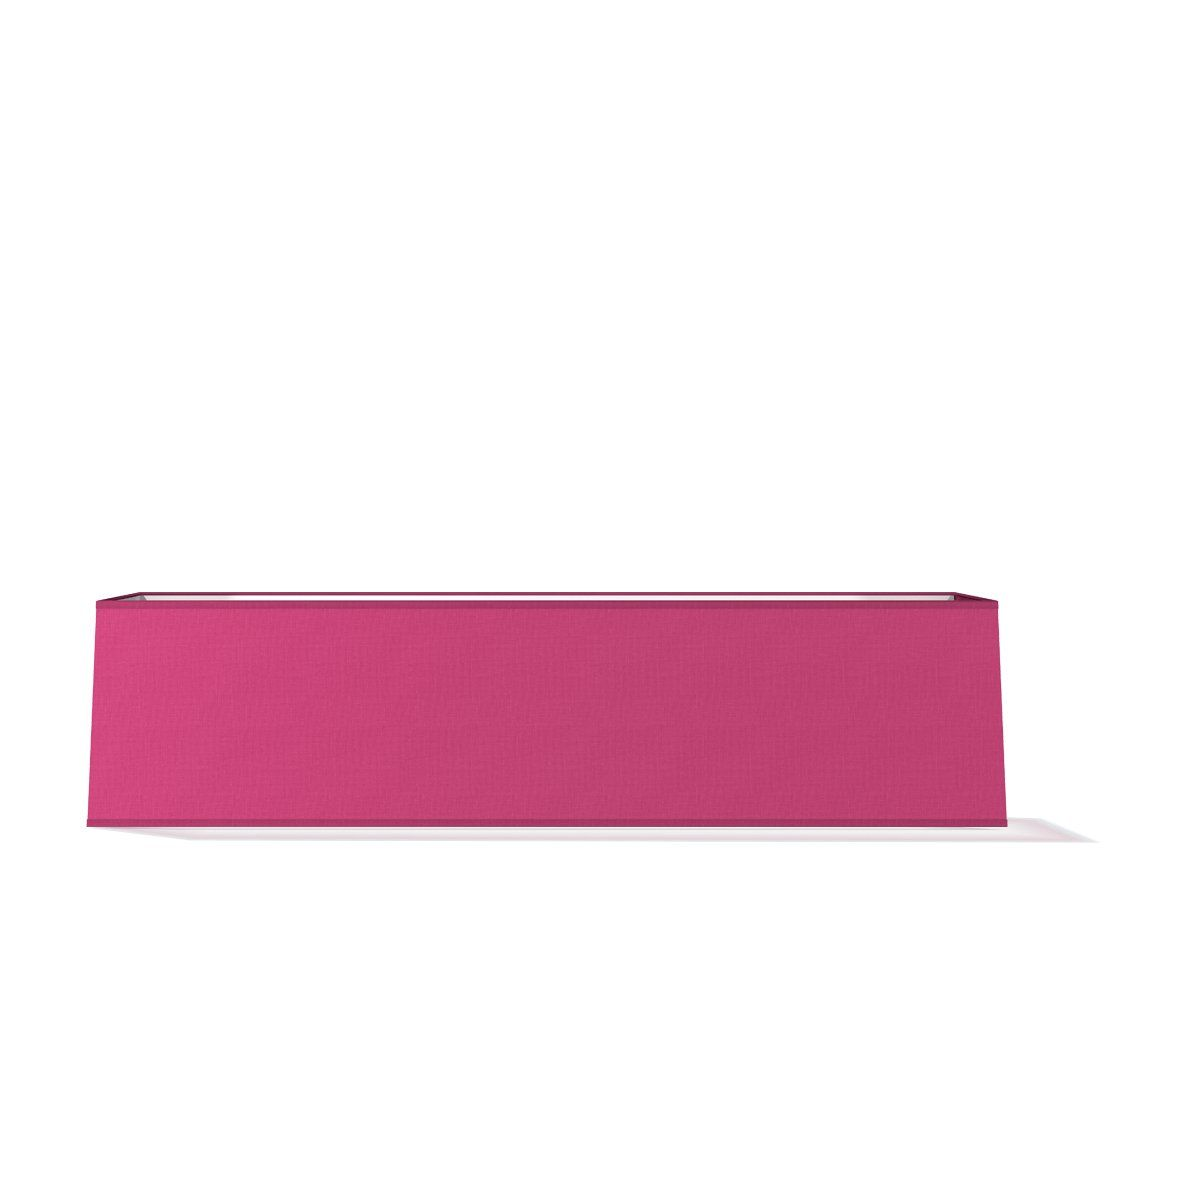 Home sweet home lampenkap Big square  100 cm - roze